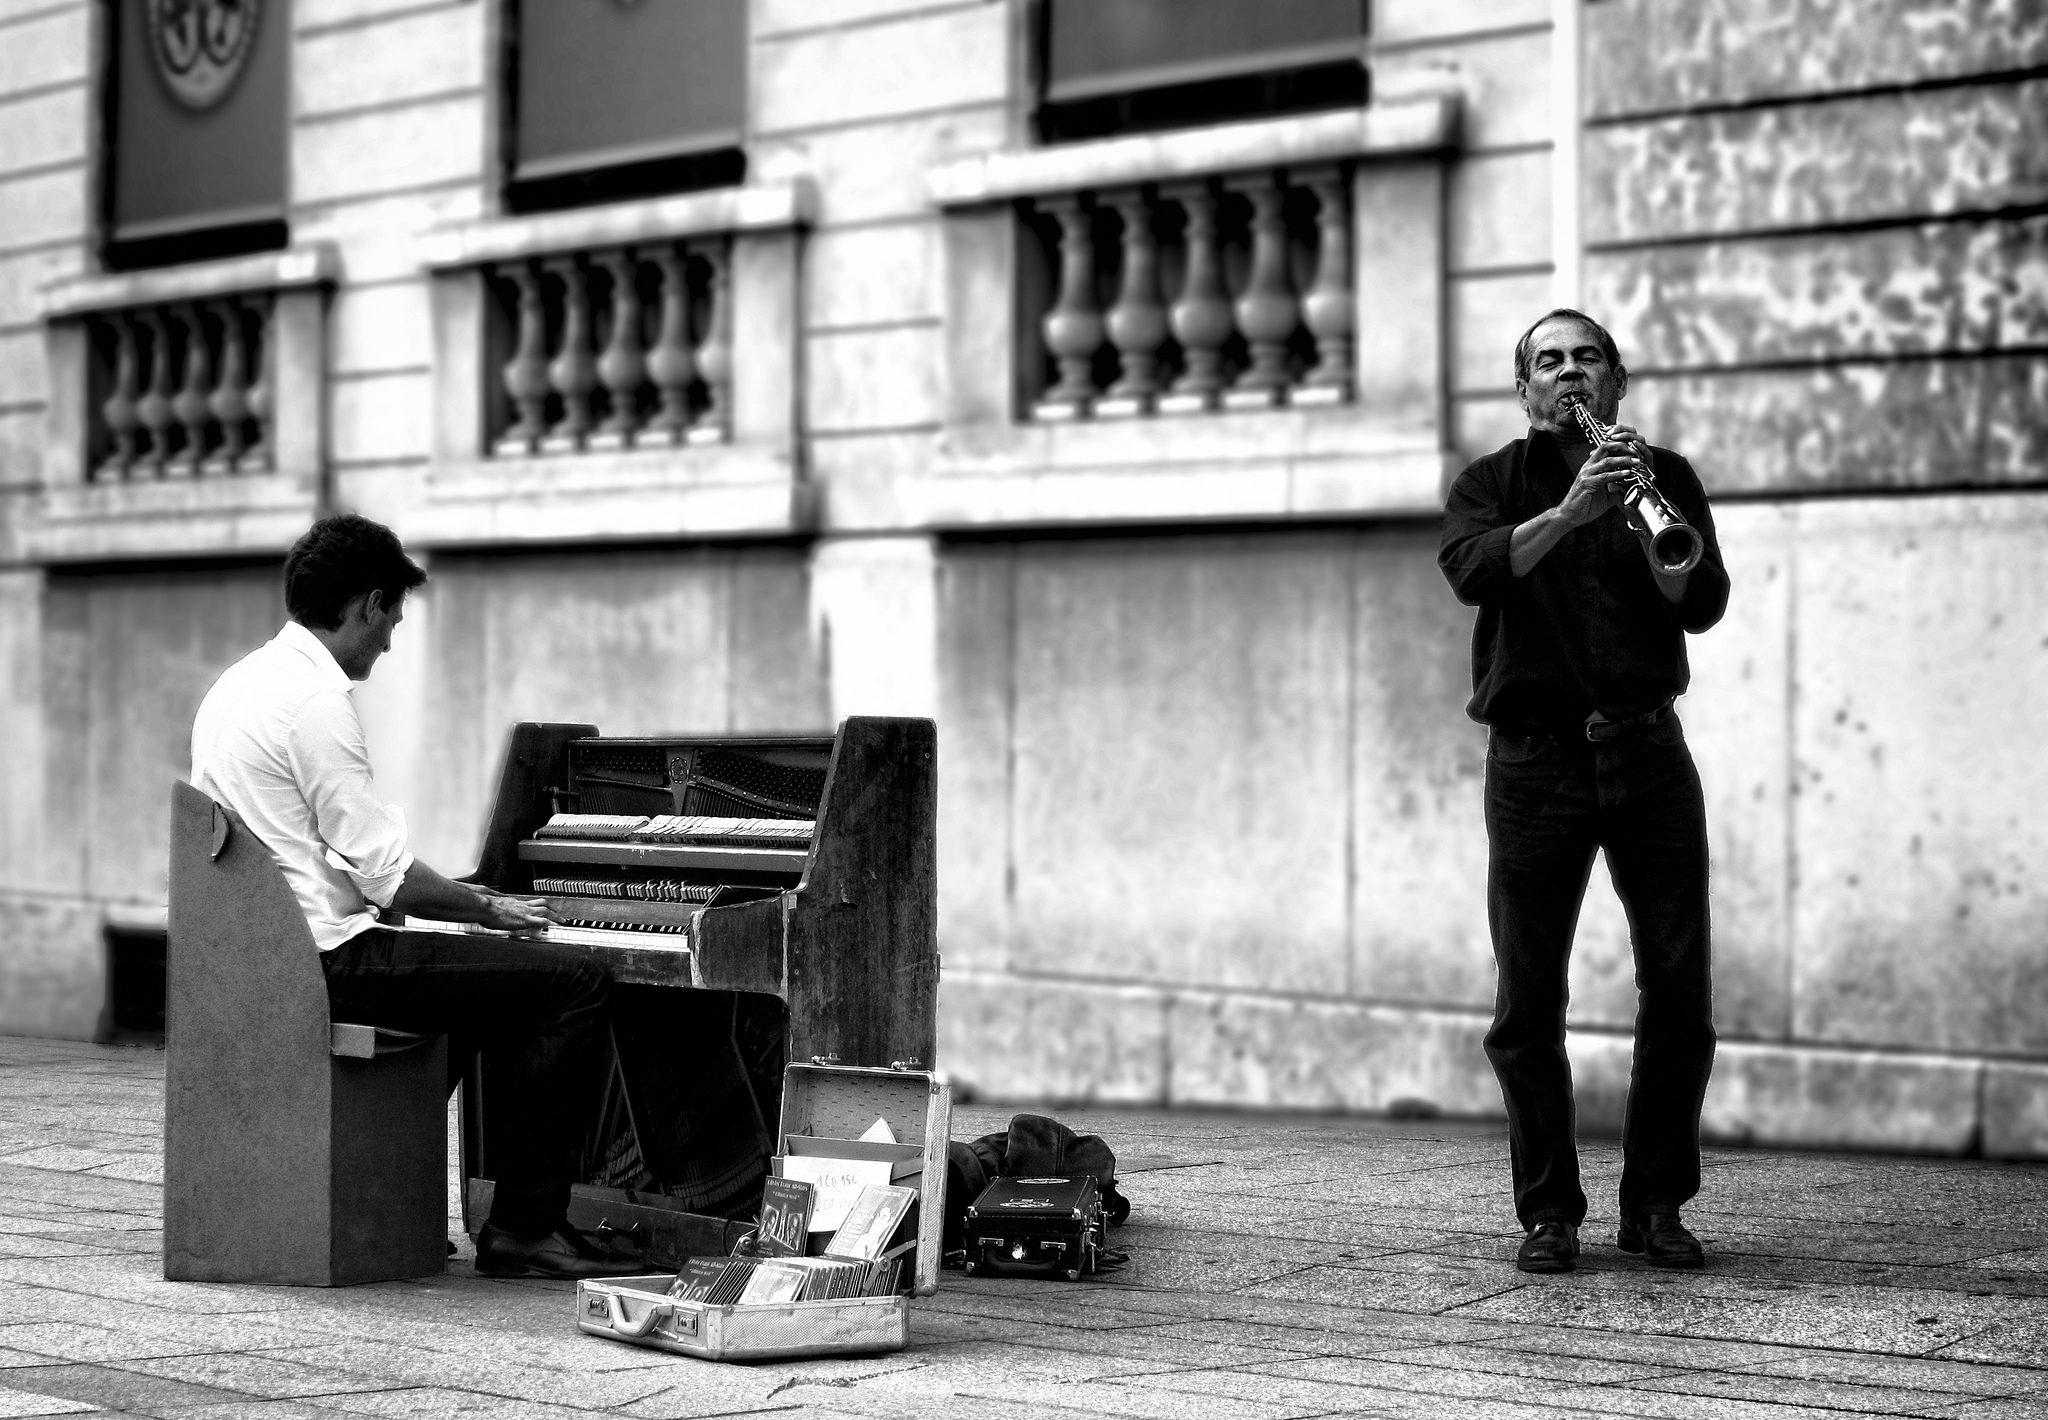 Is street performing the most effective method for musicians to make money? (Photo by  David M )